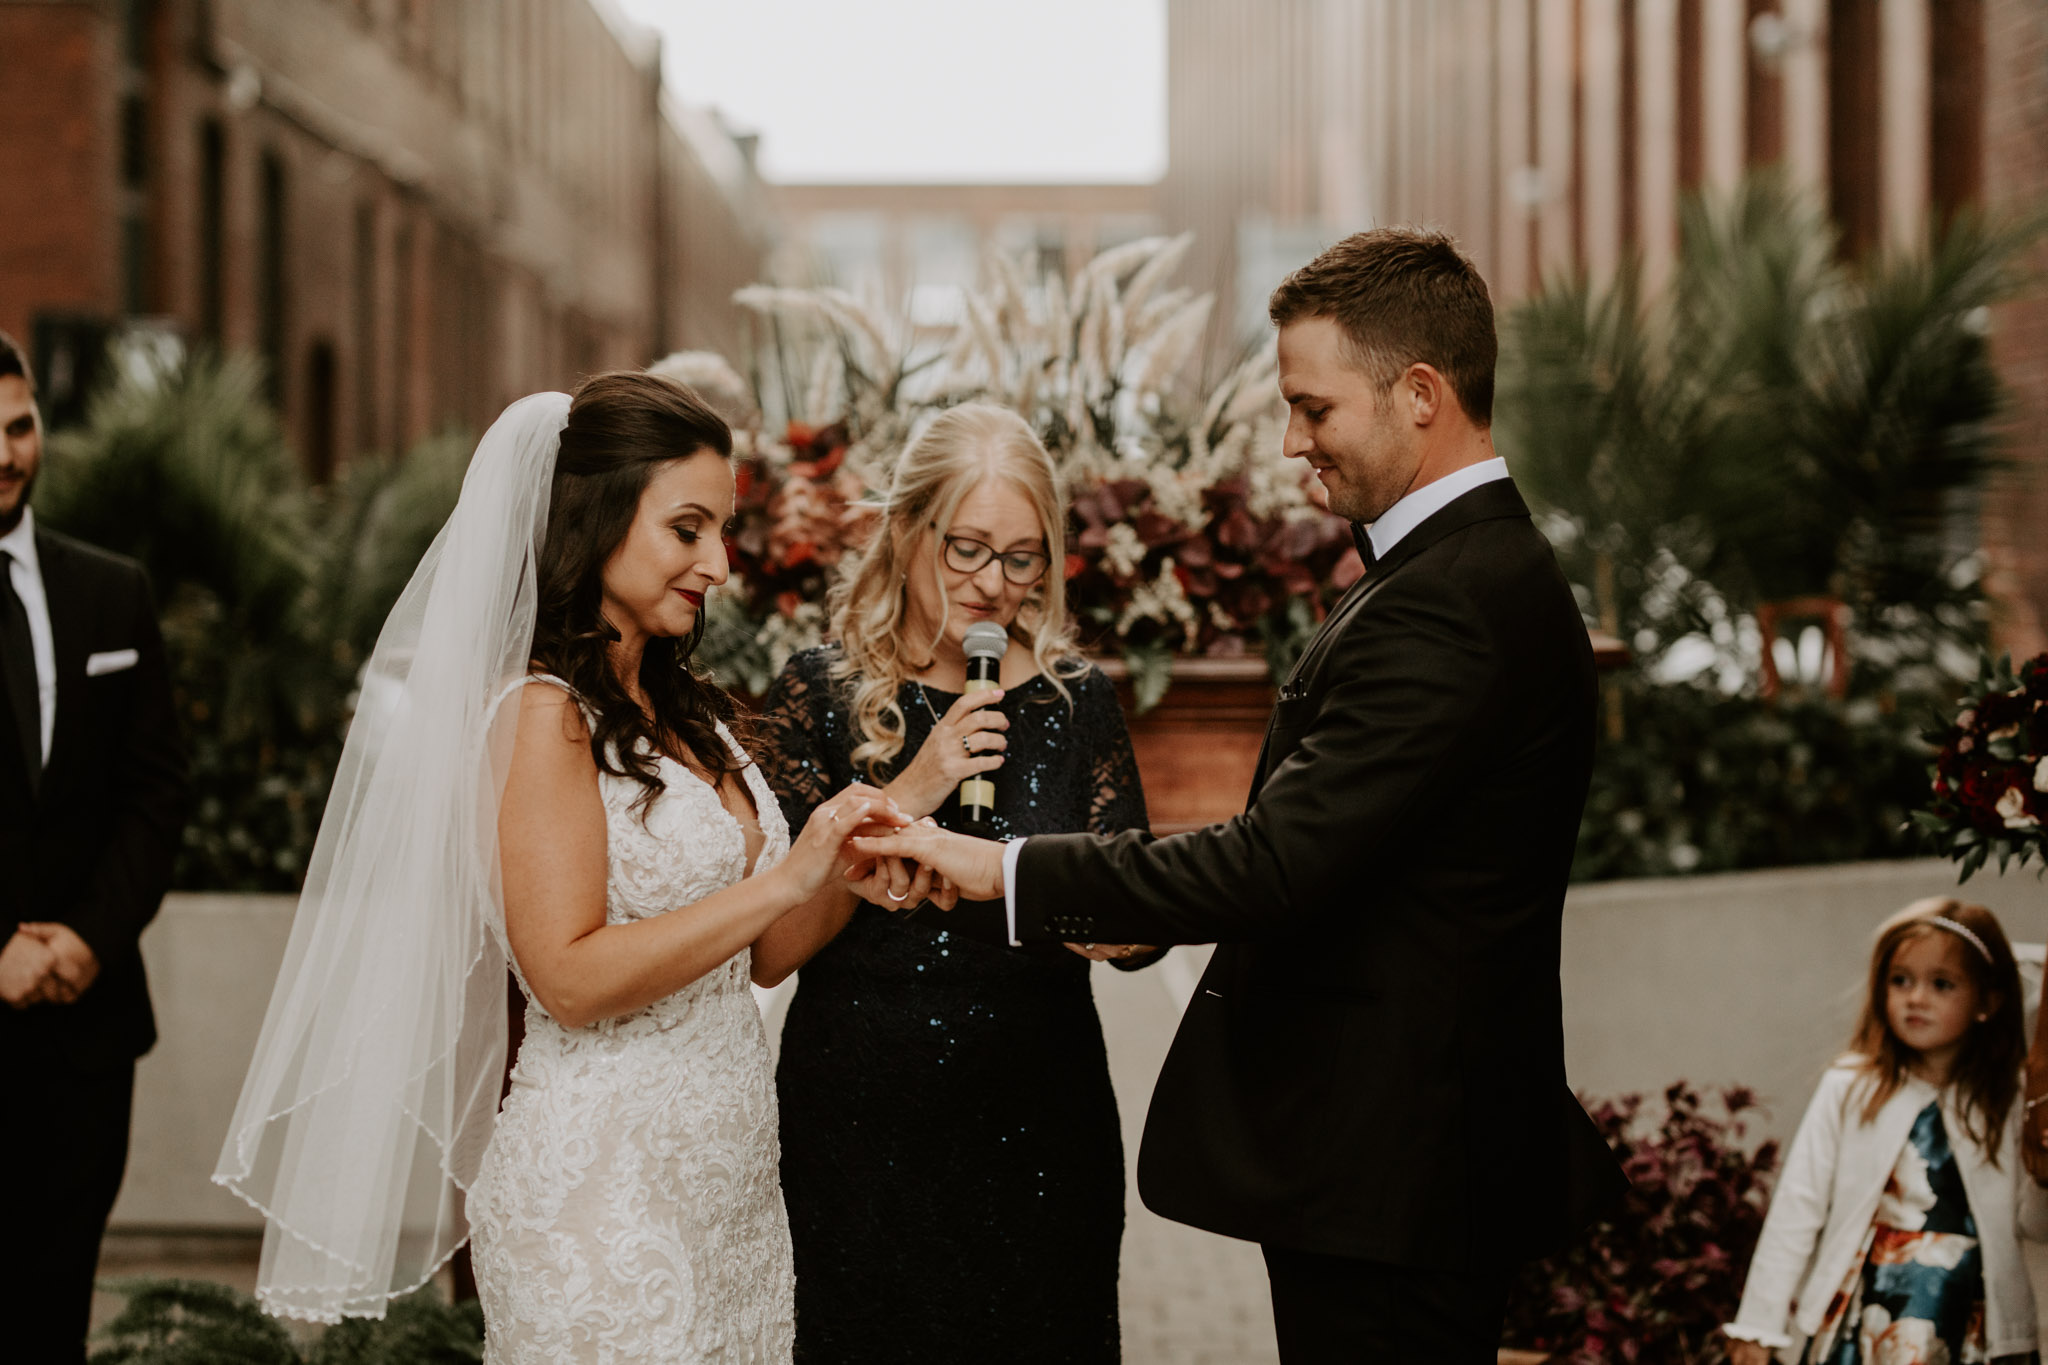 Liberty Village Wedding - bride and groom exchanging rings during outdoor ceremony